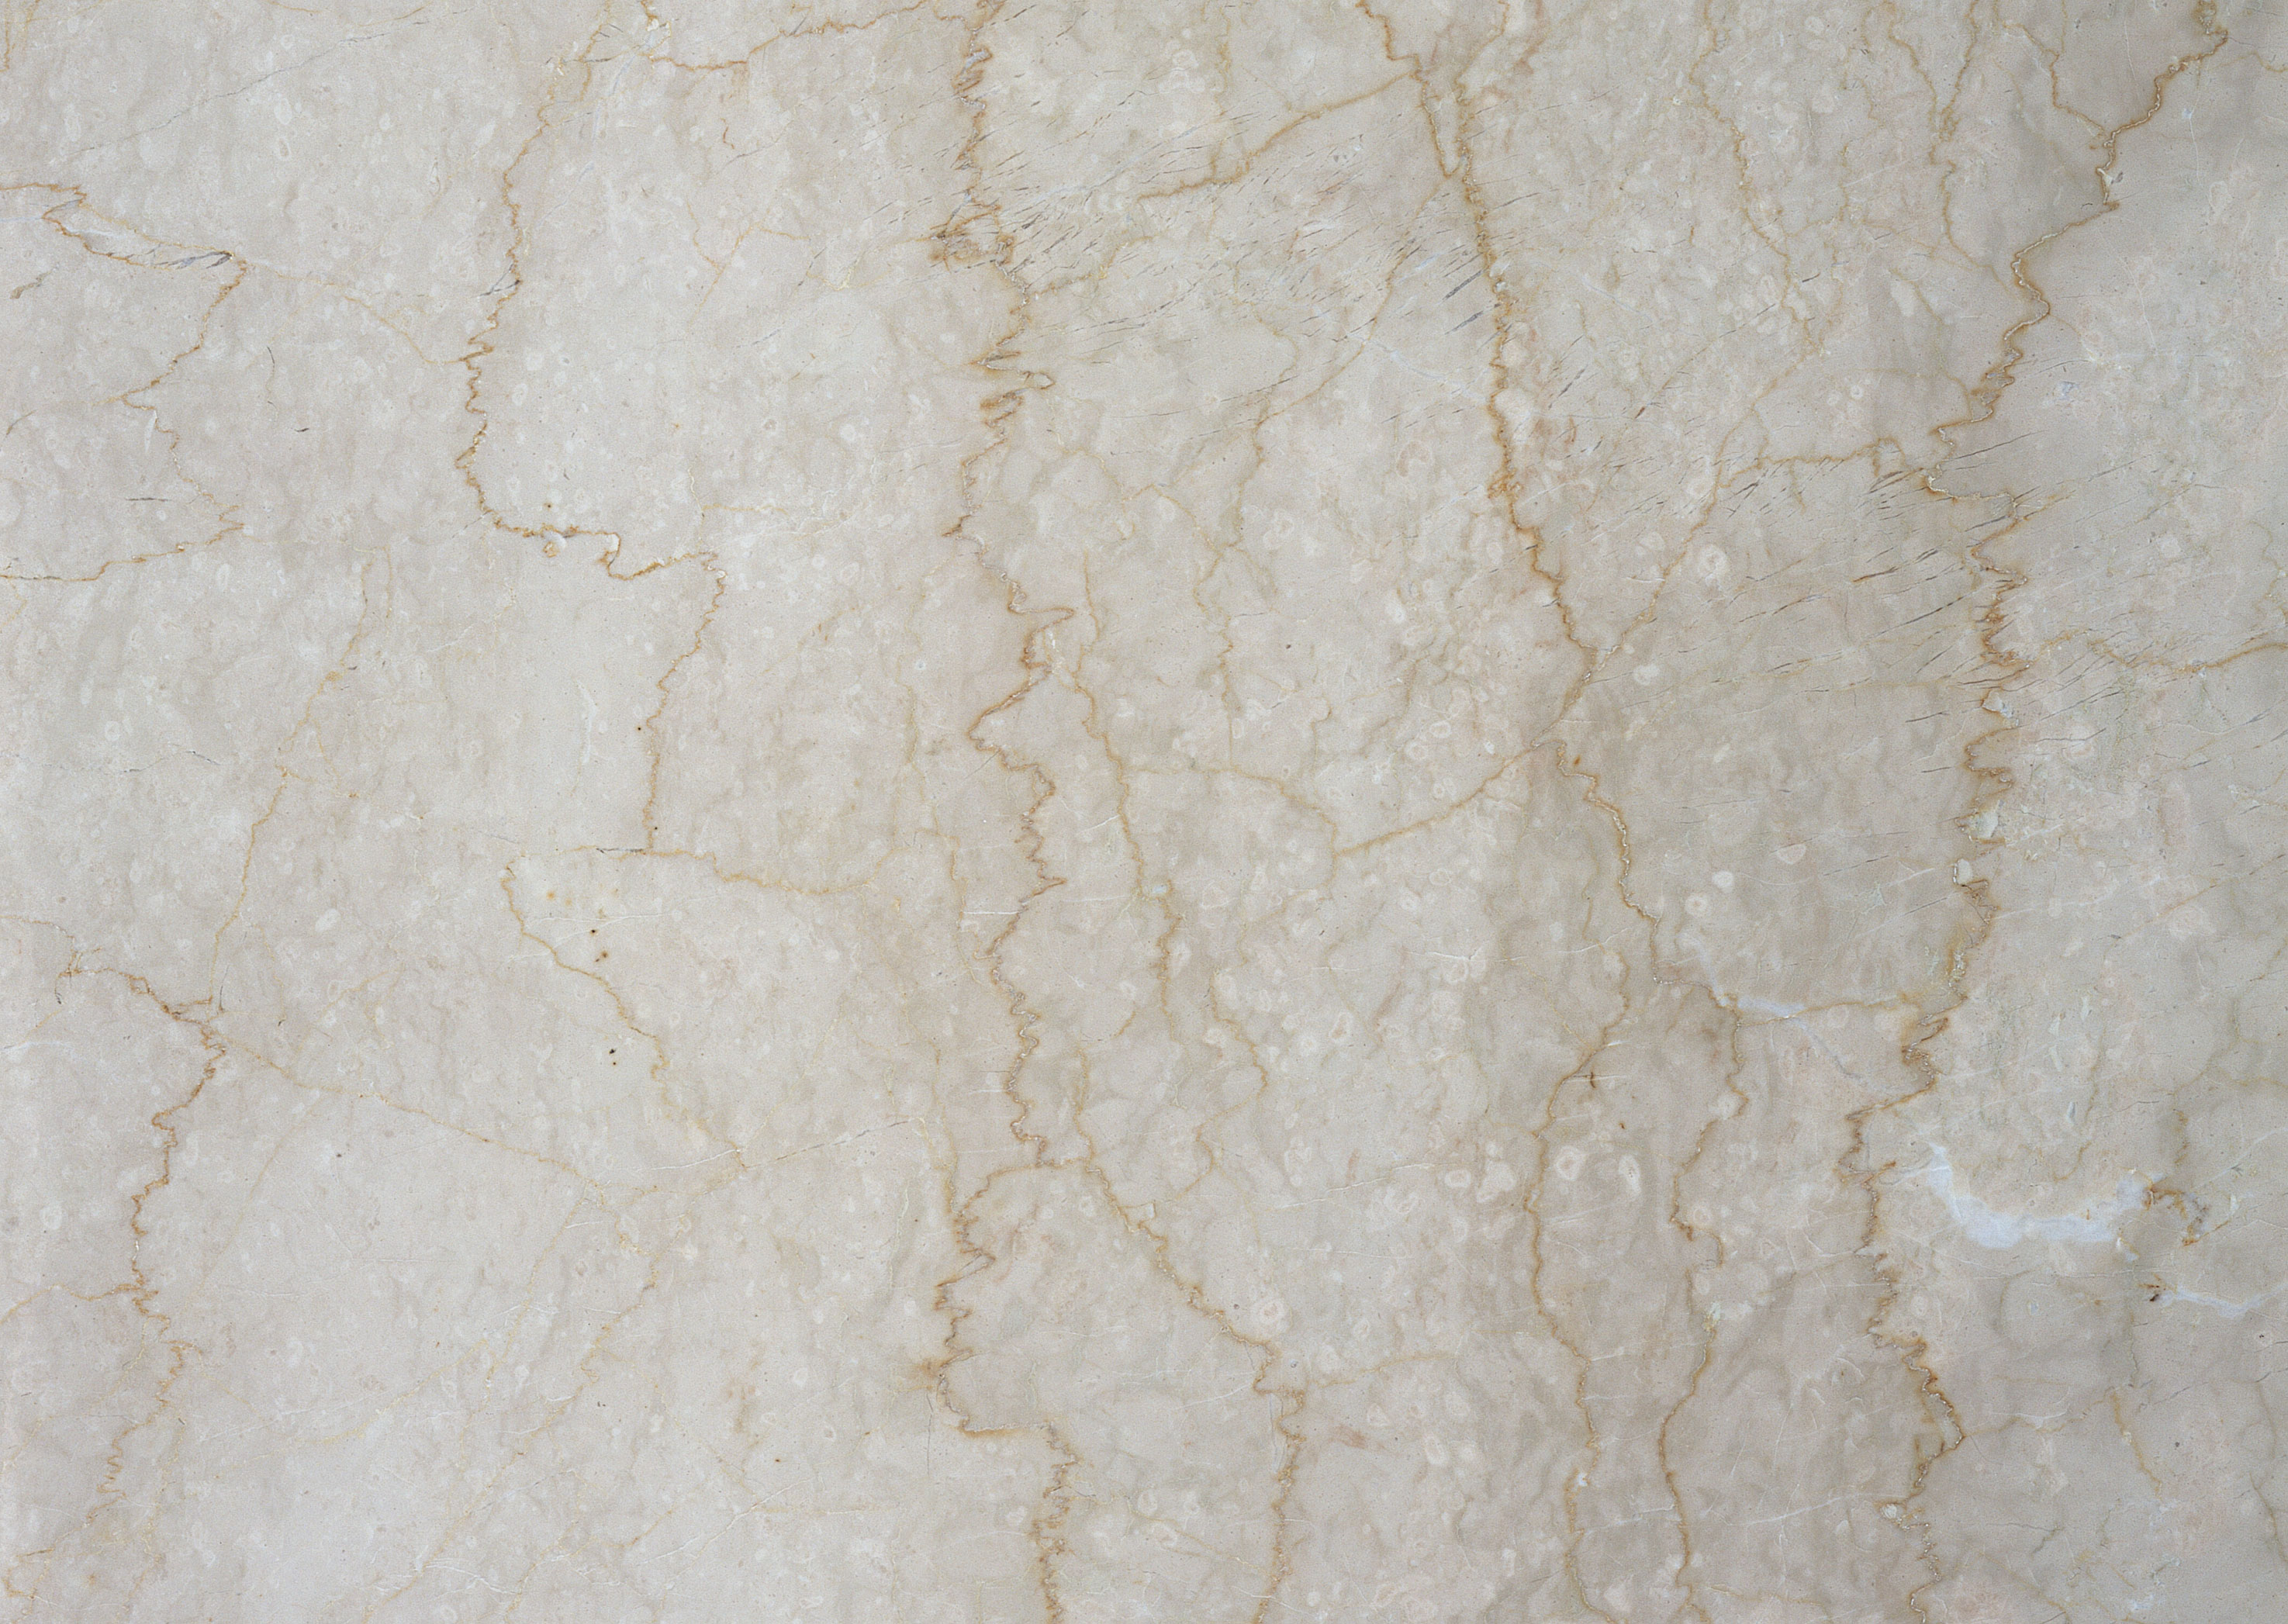 Marble Texture Hd : Marble texture background image